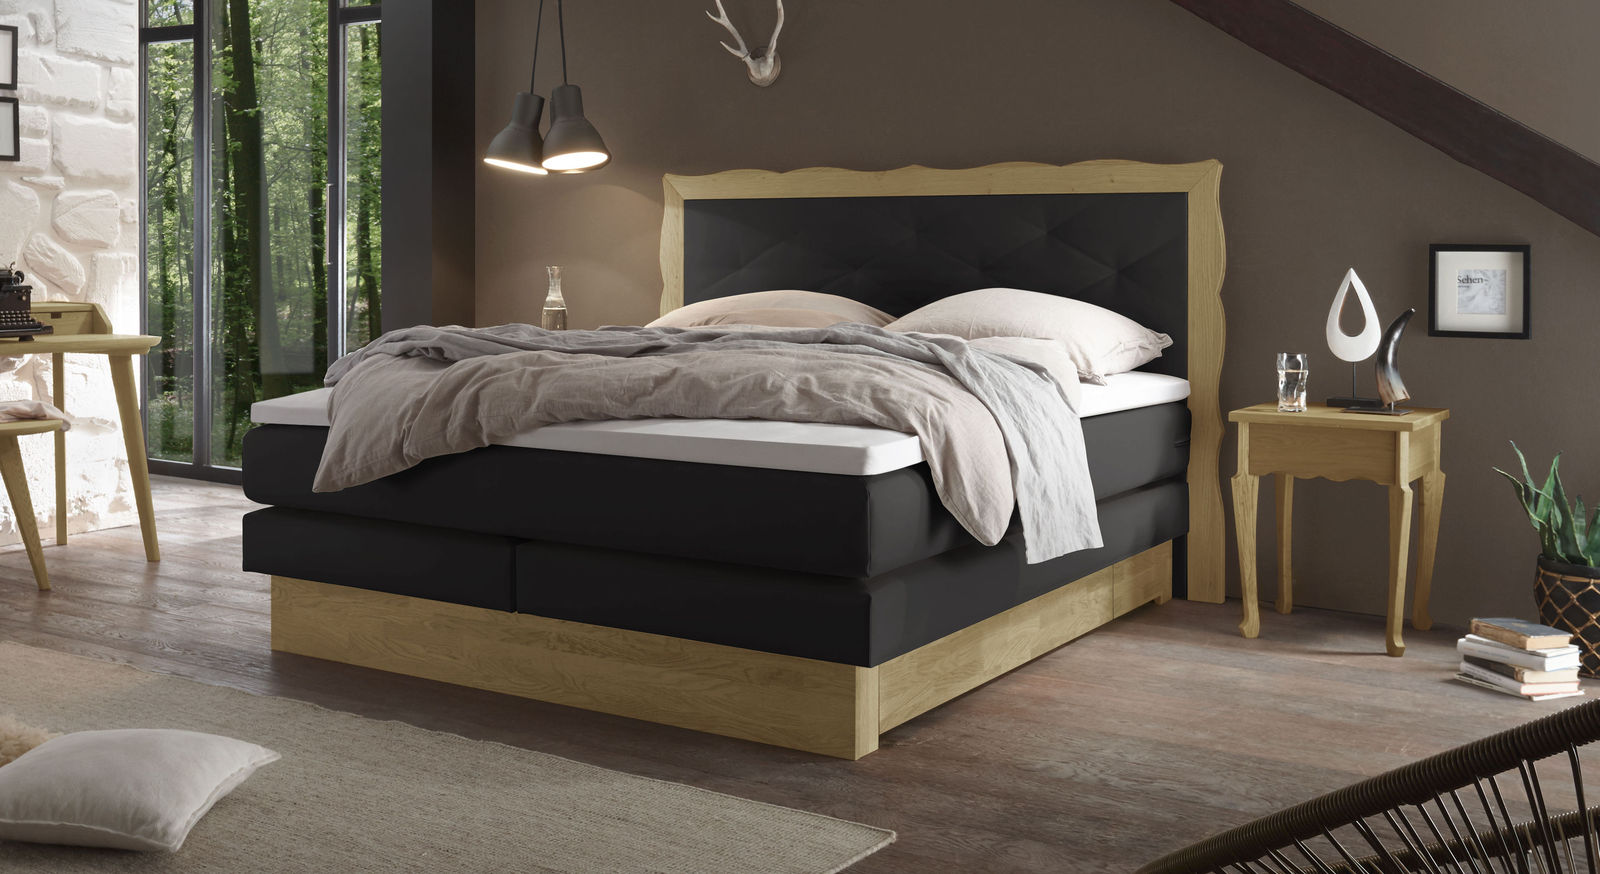 individuell anpassbares boxspringbett mit 2 schubladen gradina. Black Bedroom Furniture Sets. Home Design Ideas